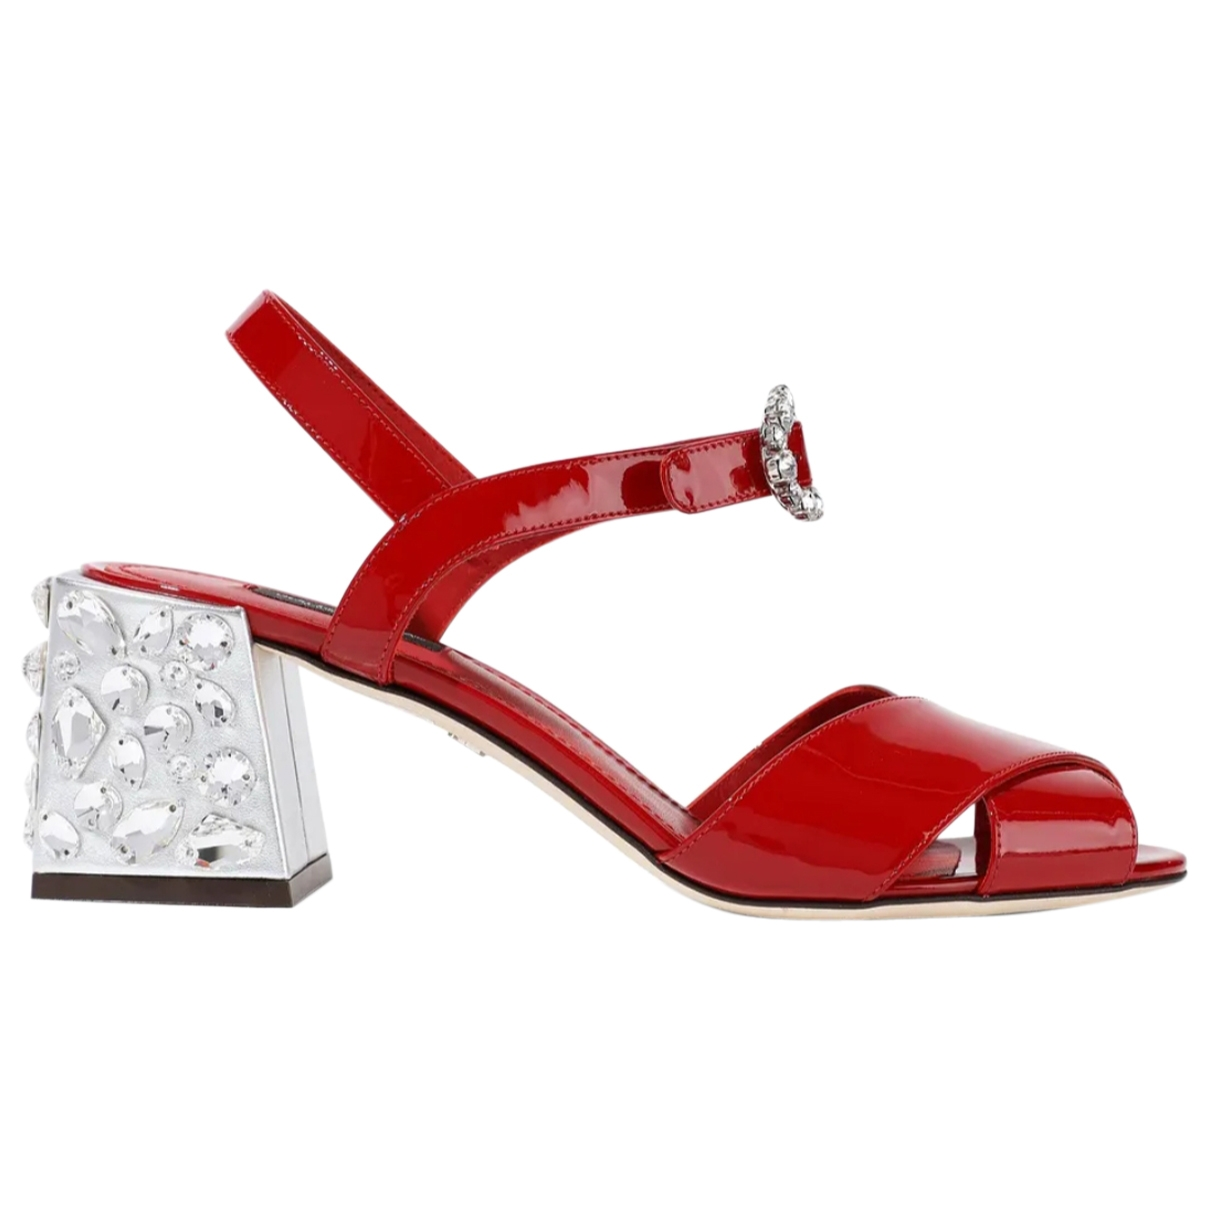 Dolce & Gabbana \N Red Leather Sandals for Women 38.5 EU